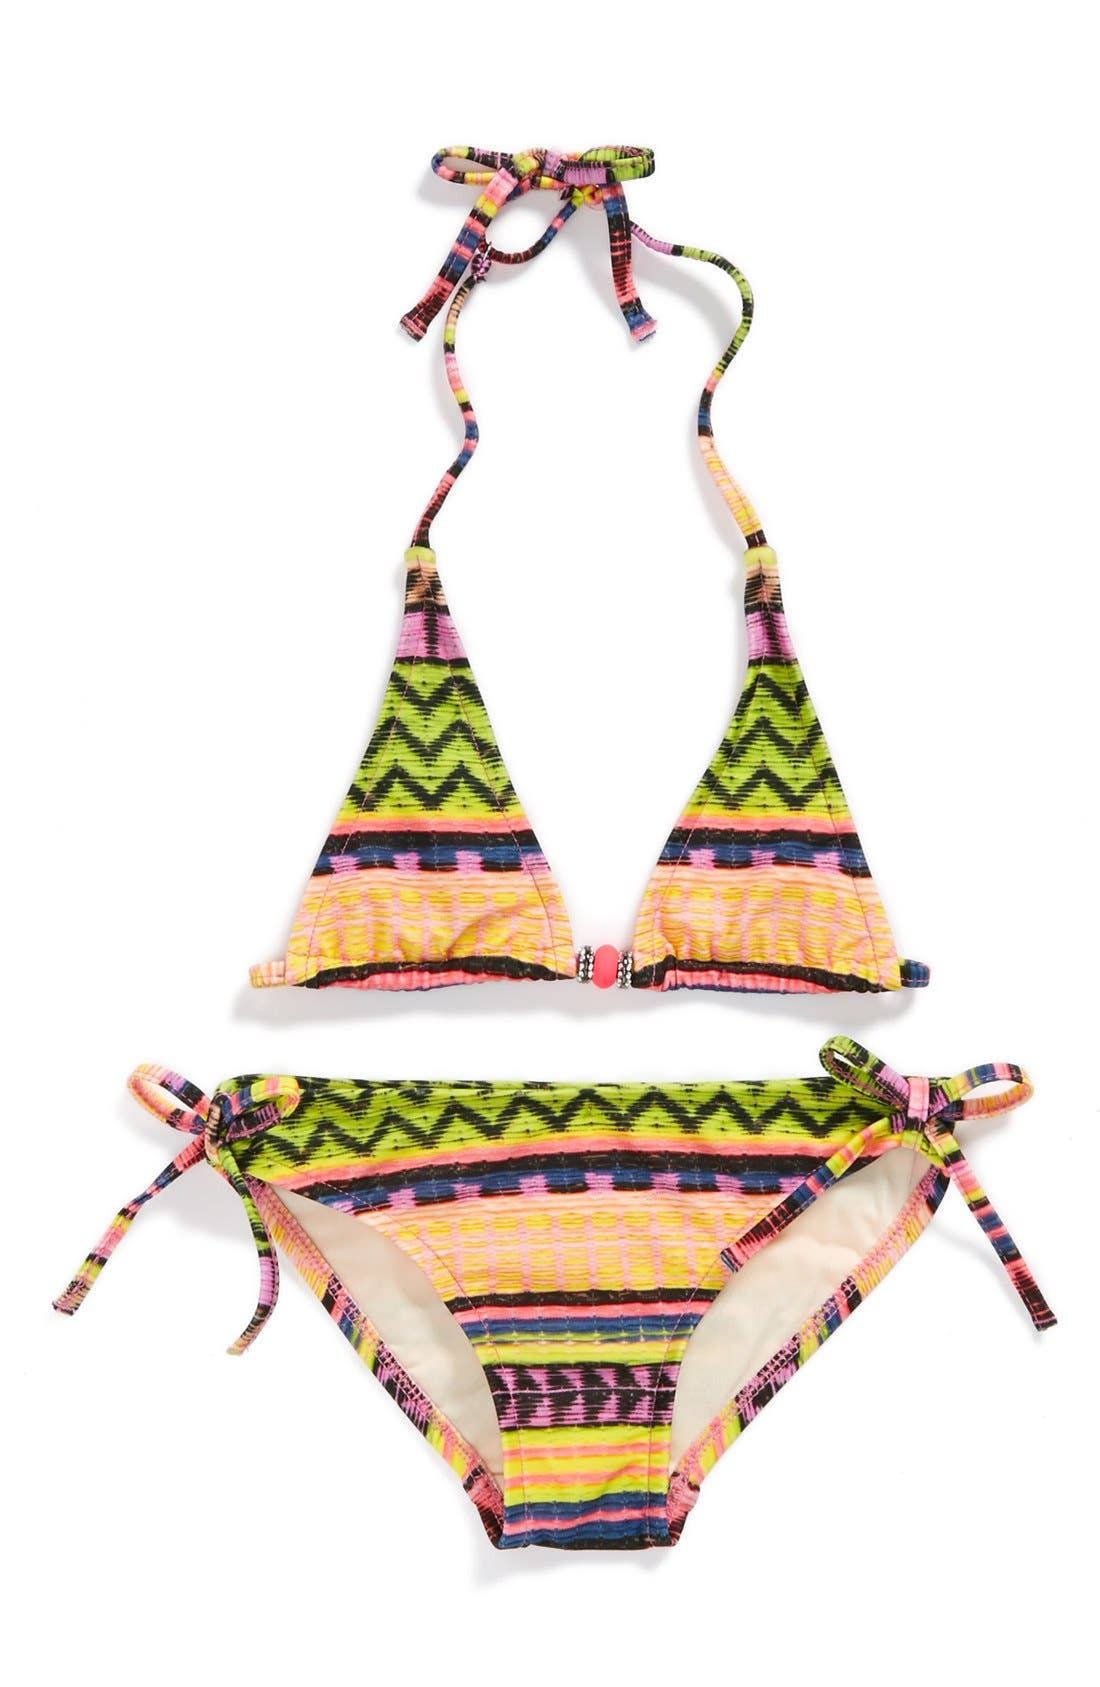 Alternate Image 1 Selected - Milly Minis 'Fiji' Two-Piece Swimsuit (Big Girls)